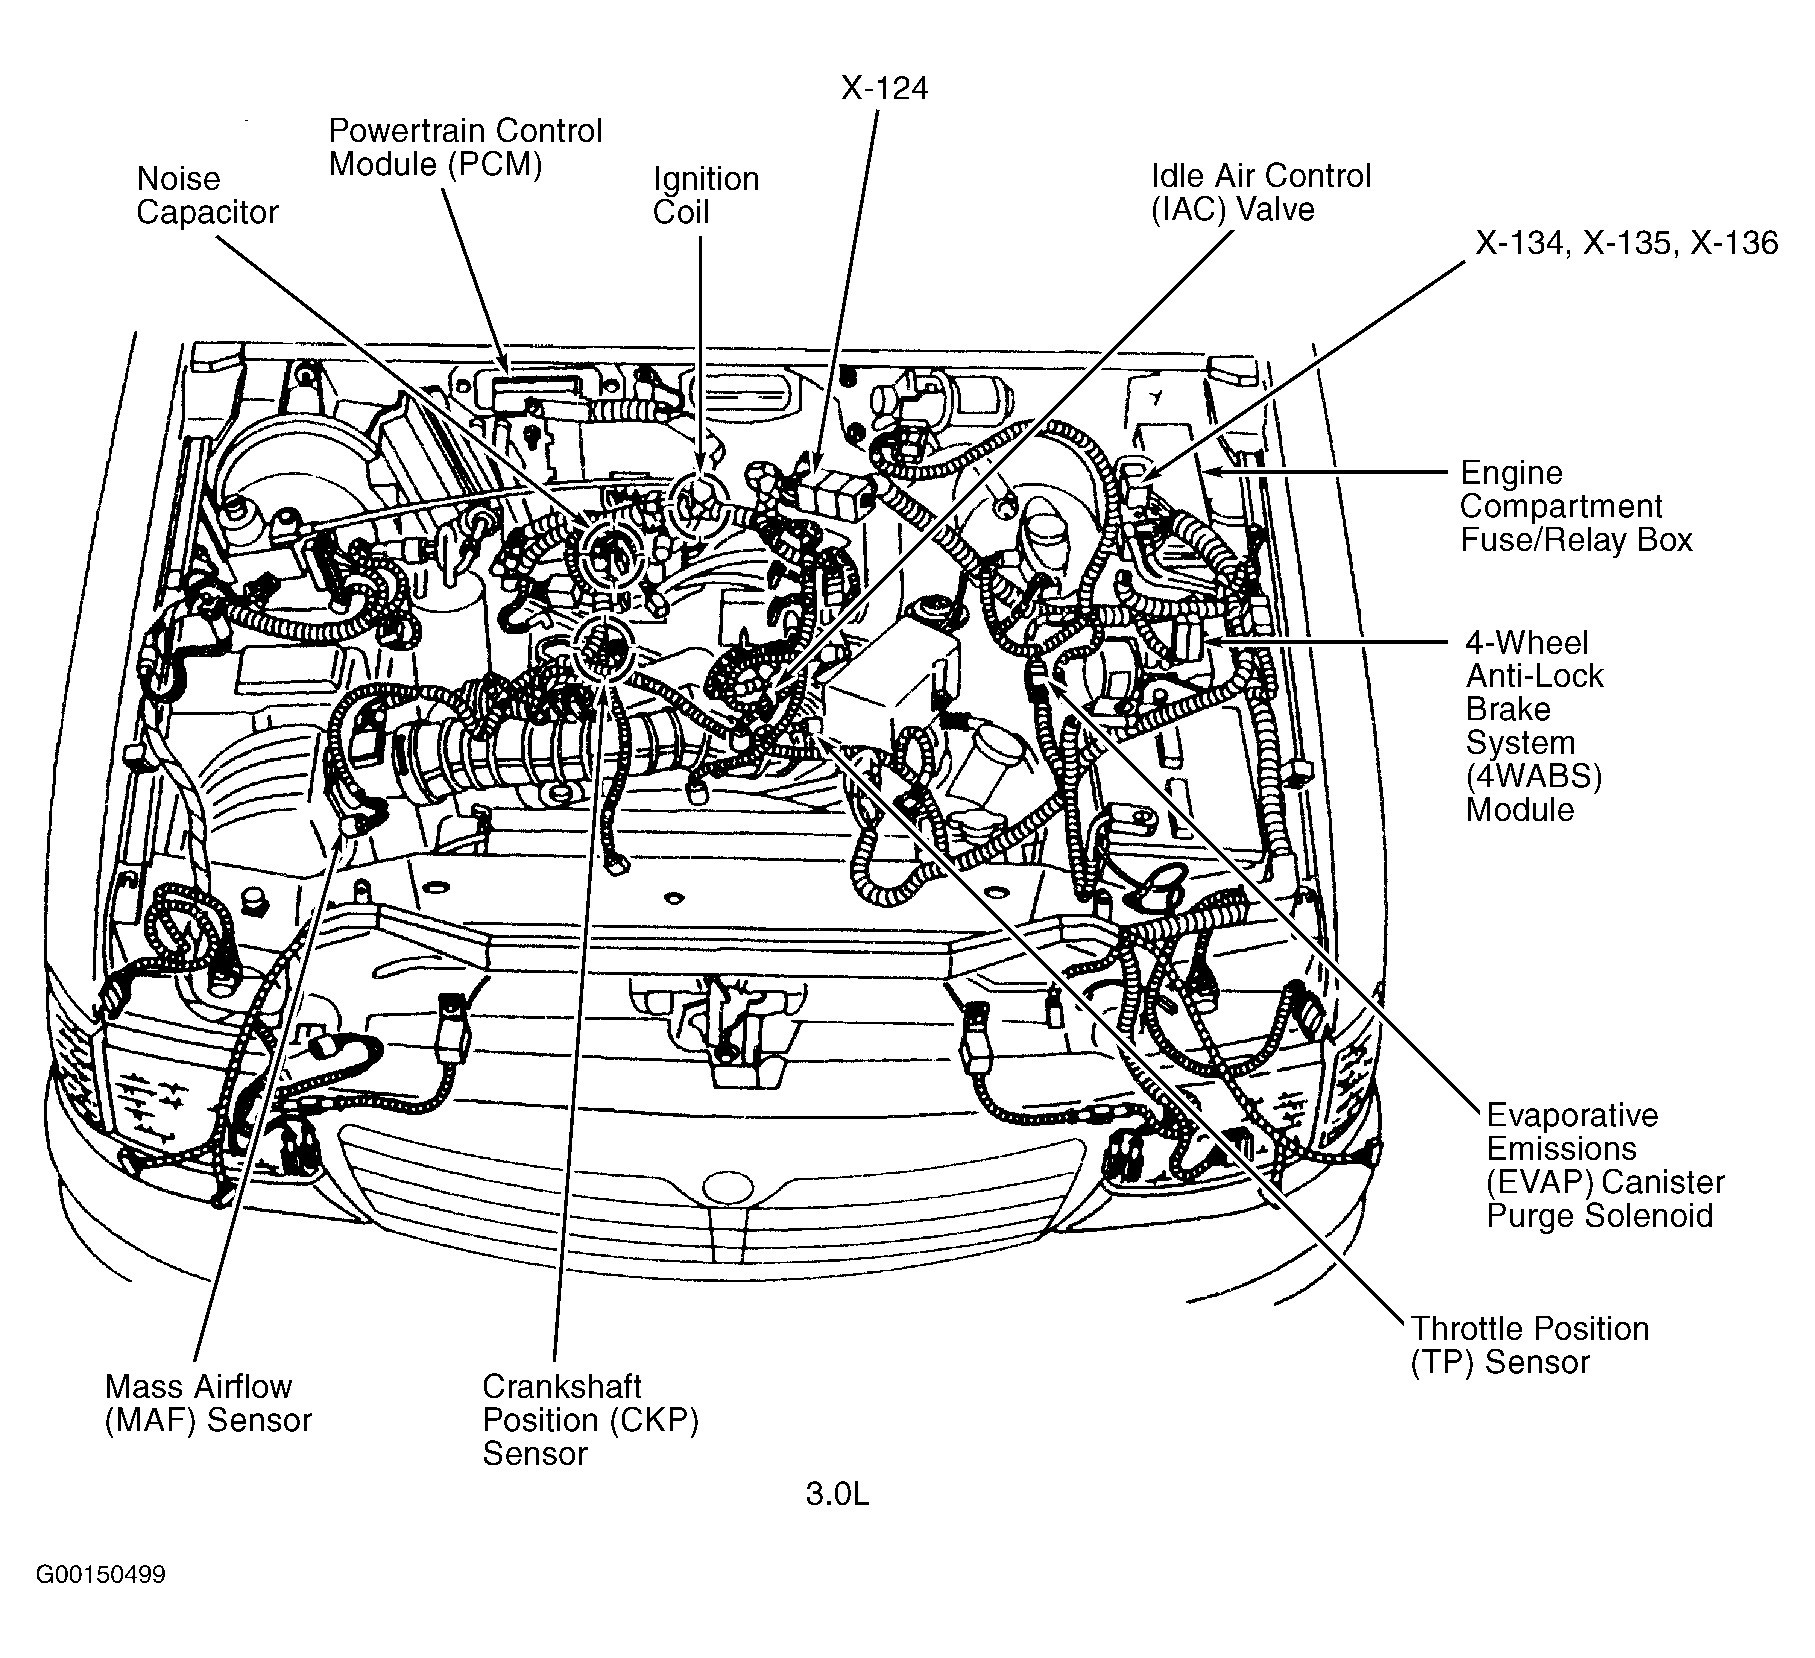 1991 Jeep Wrangler Engine Diagram Wiring Library 6 Cylinder My Rh Detoxicrecenze Com